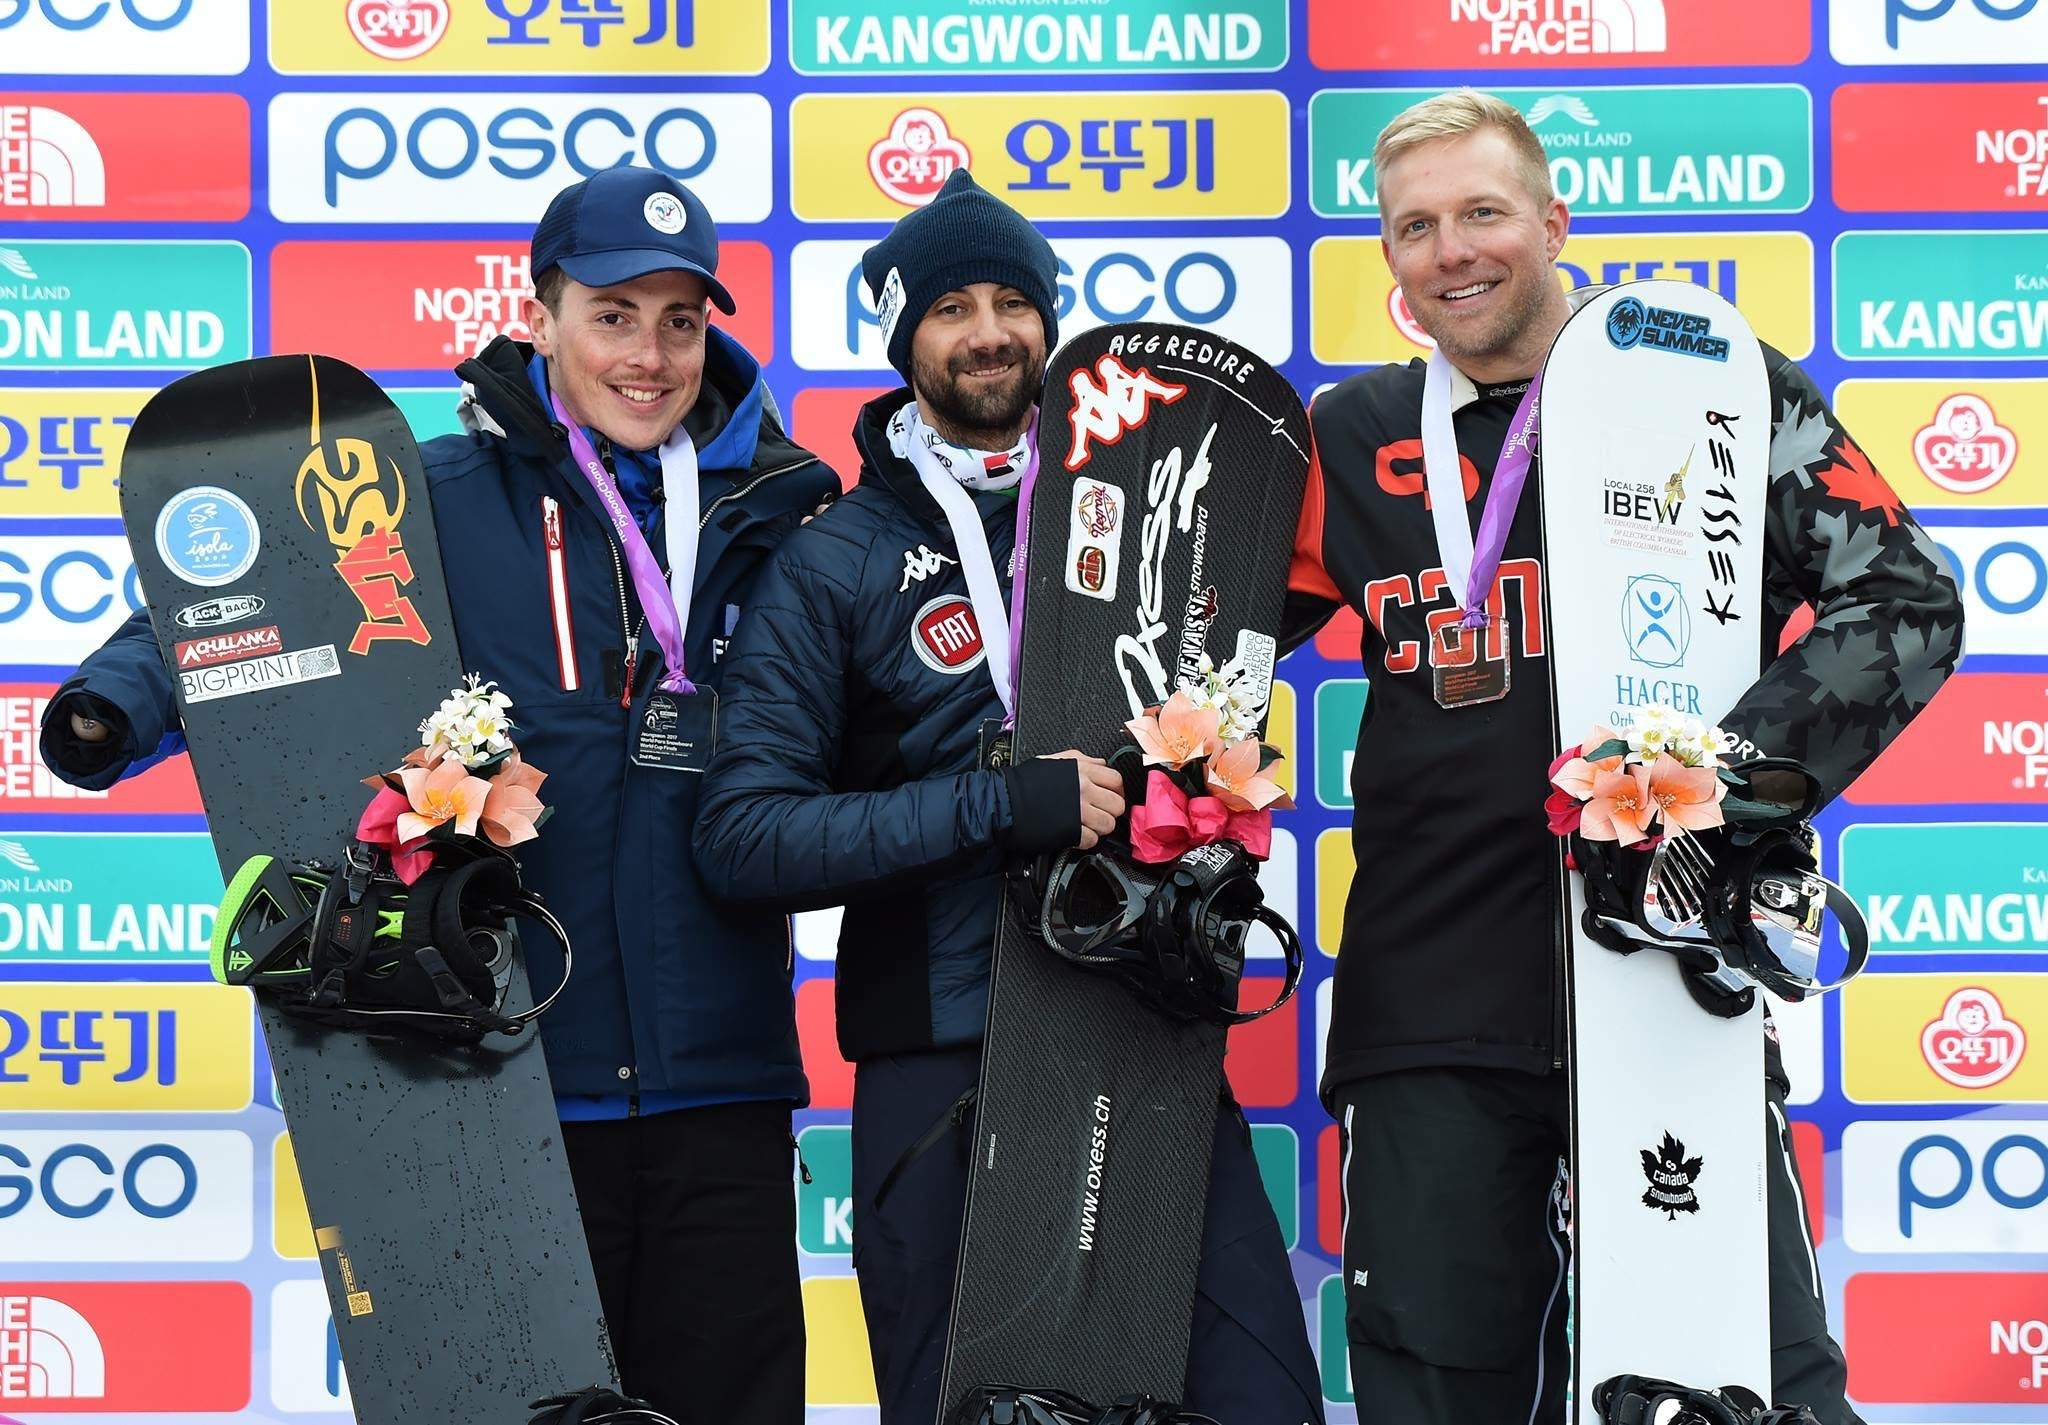 Minard winning Bronze at the 2017 Para World Cup in Pyeongchang